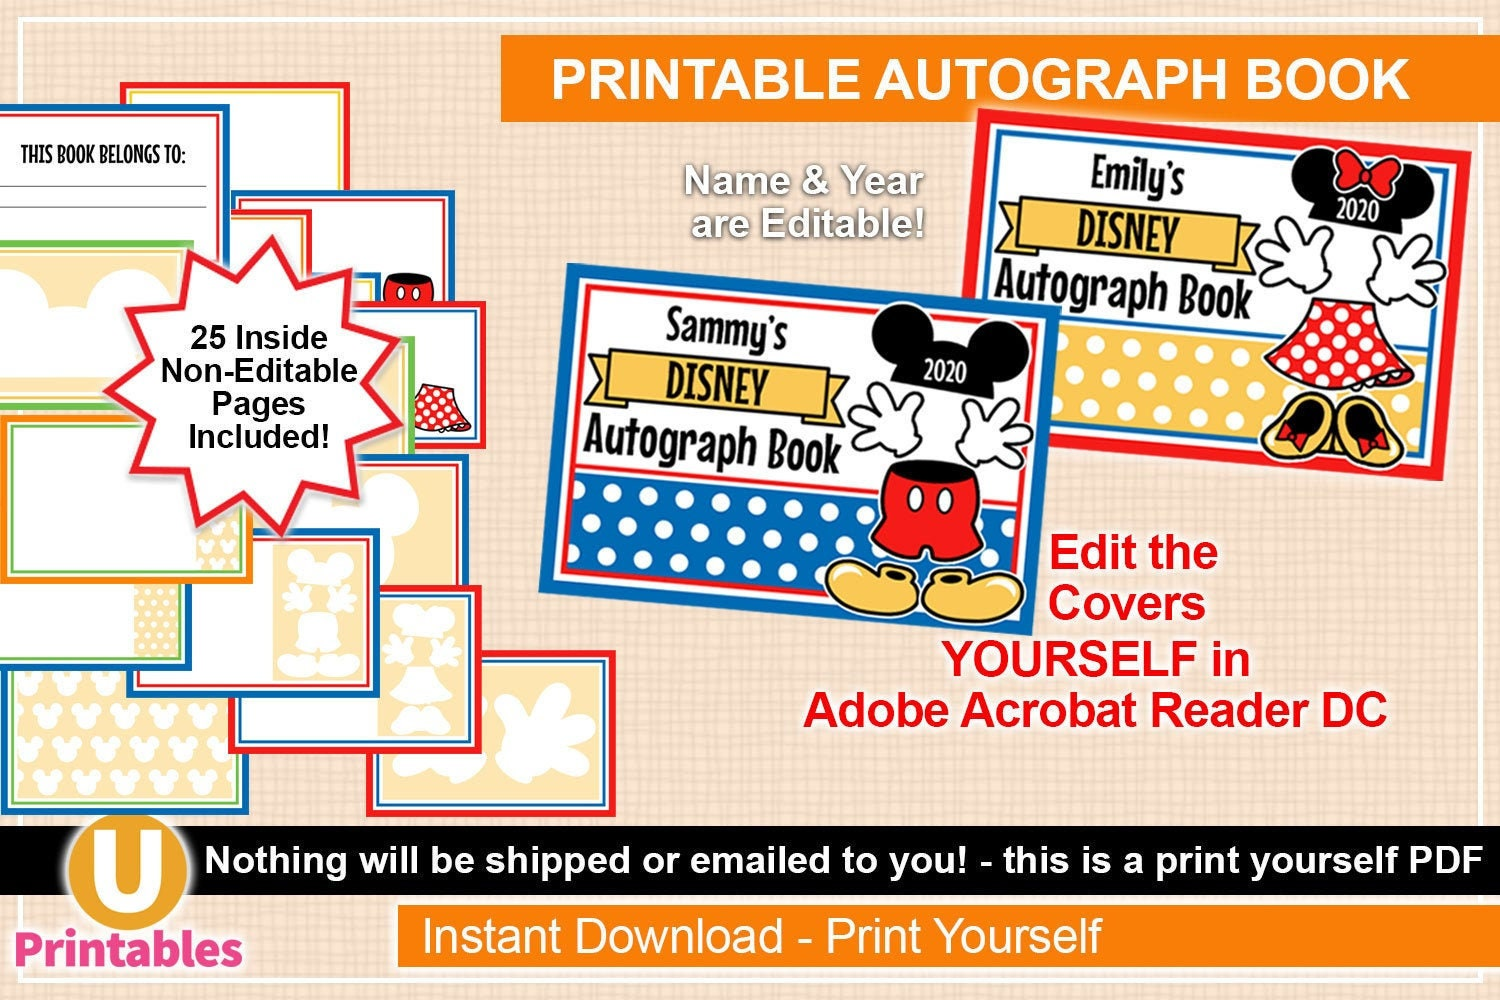 photograph about Printable Disney Autograph Book identify Printable Disney Autograph E-book - Immediate Down load - Mickey Minnie - Print On your own PDF - Personalize Customize Go over By yourself - Autographs